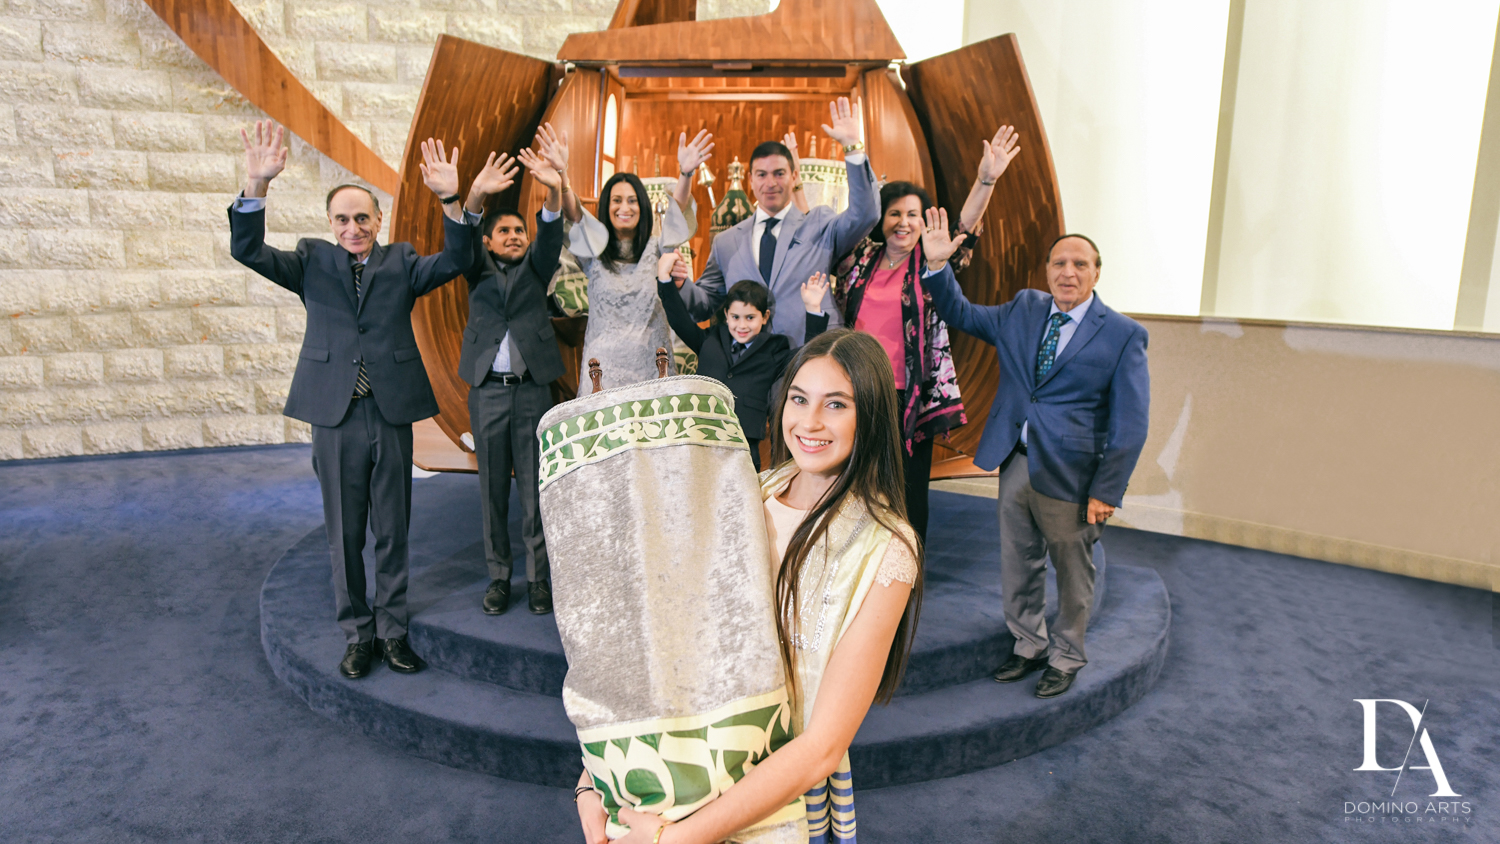 fun family photo at Traditional Jewish Bat Mitzvah at Temple Beth El by Domino Arts Photography